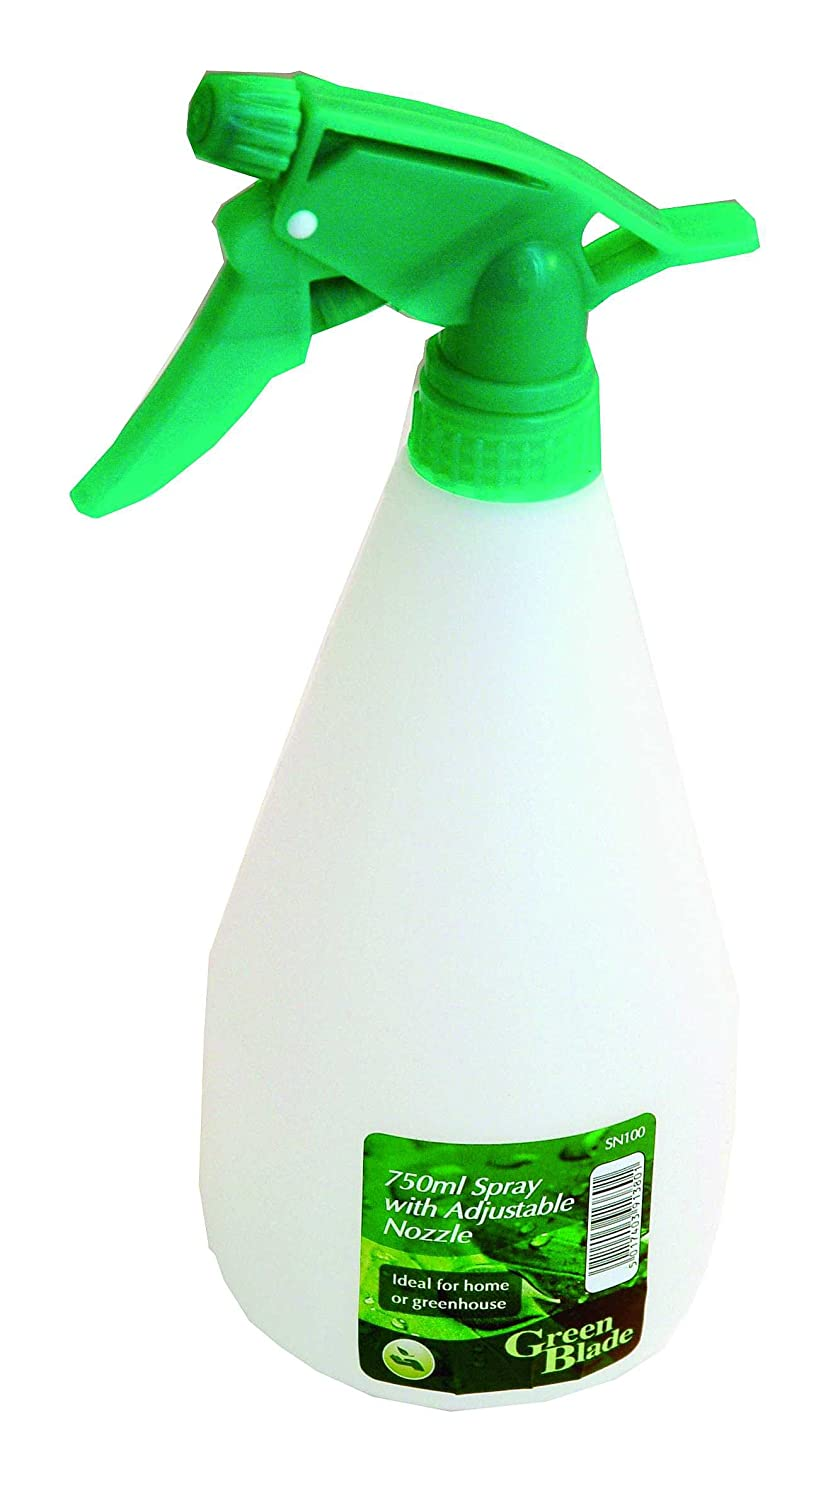 750 ml Gardening Spray Bottle with Adjustable Nozzle Green Blade SN100 ST-HA-BB-SN100